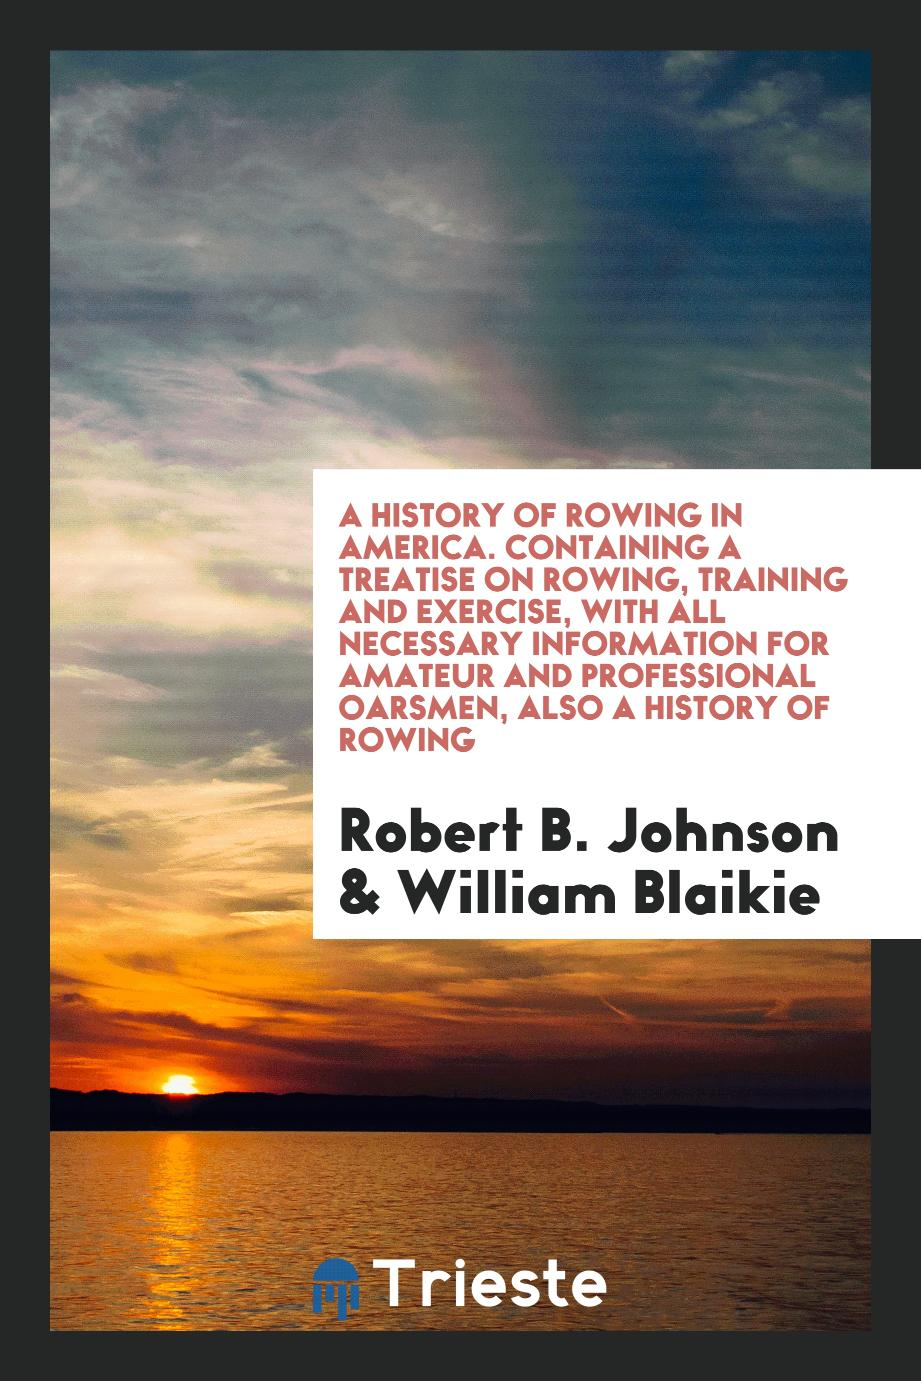 A History of Rowing in America. Containing a Treatise on Rowing, Training and Exercise, with All Necessary Information for Amateur and Professional Oarsmen, Also a History of Rowing